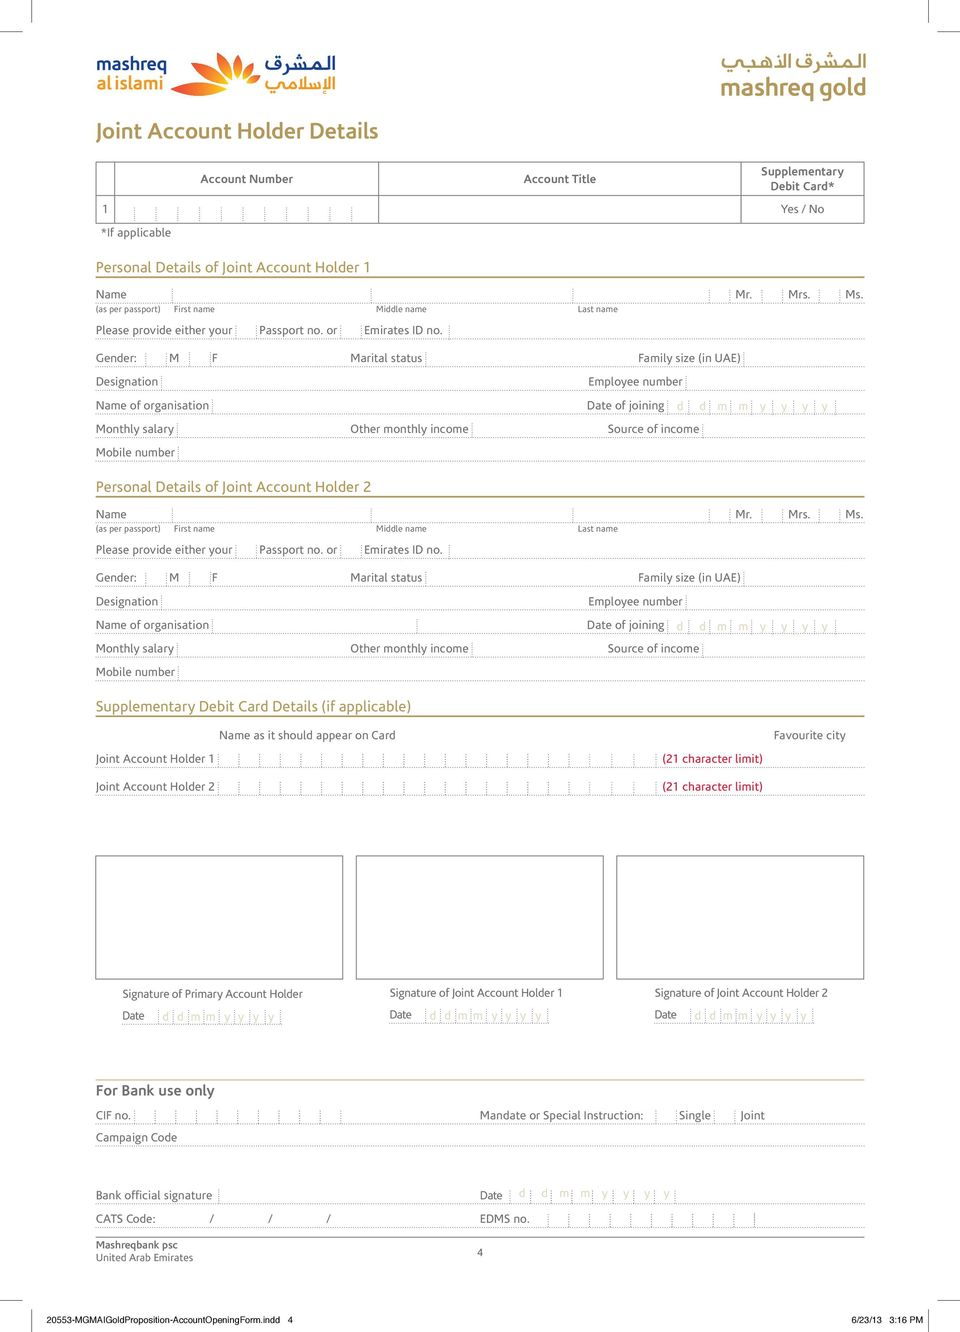 Gender: M F Marital status Family size (in UAE) Designation Name of organisation Employee number of joining Monthly salary Other monthly income Source of income Mobile number Personal Details of